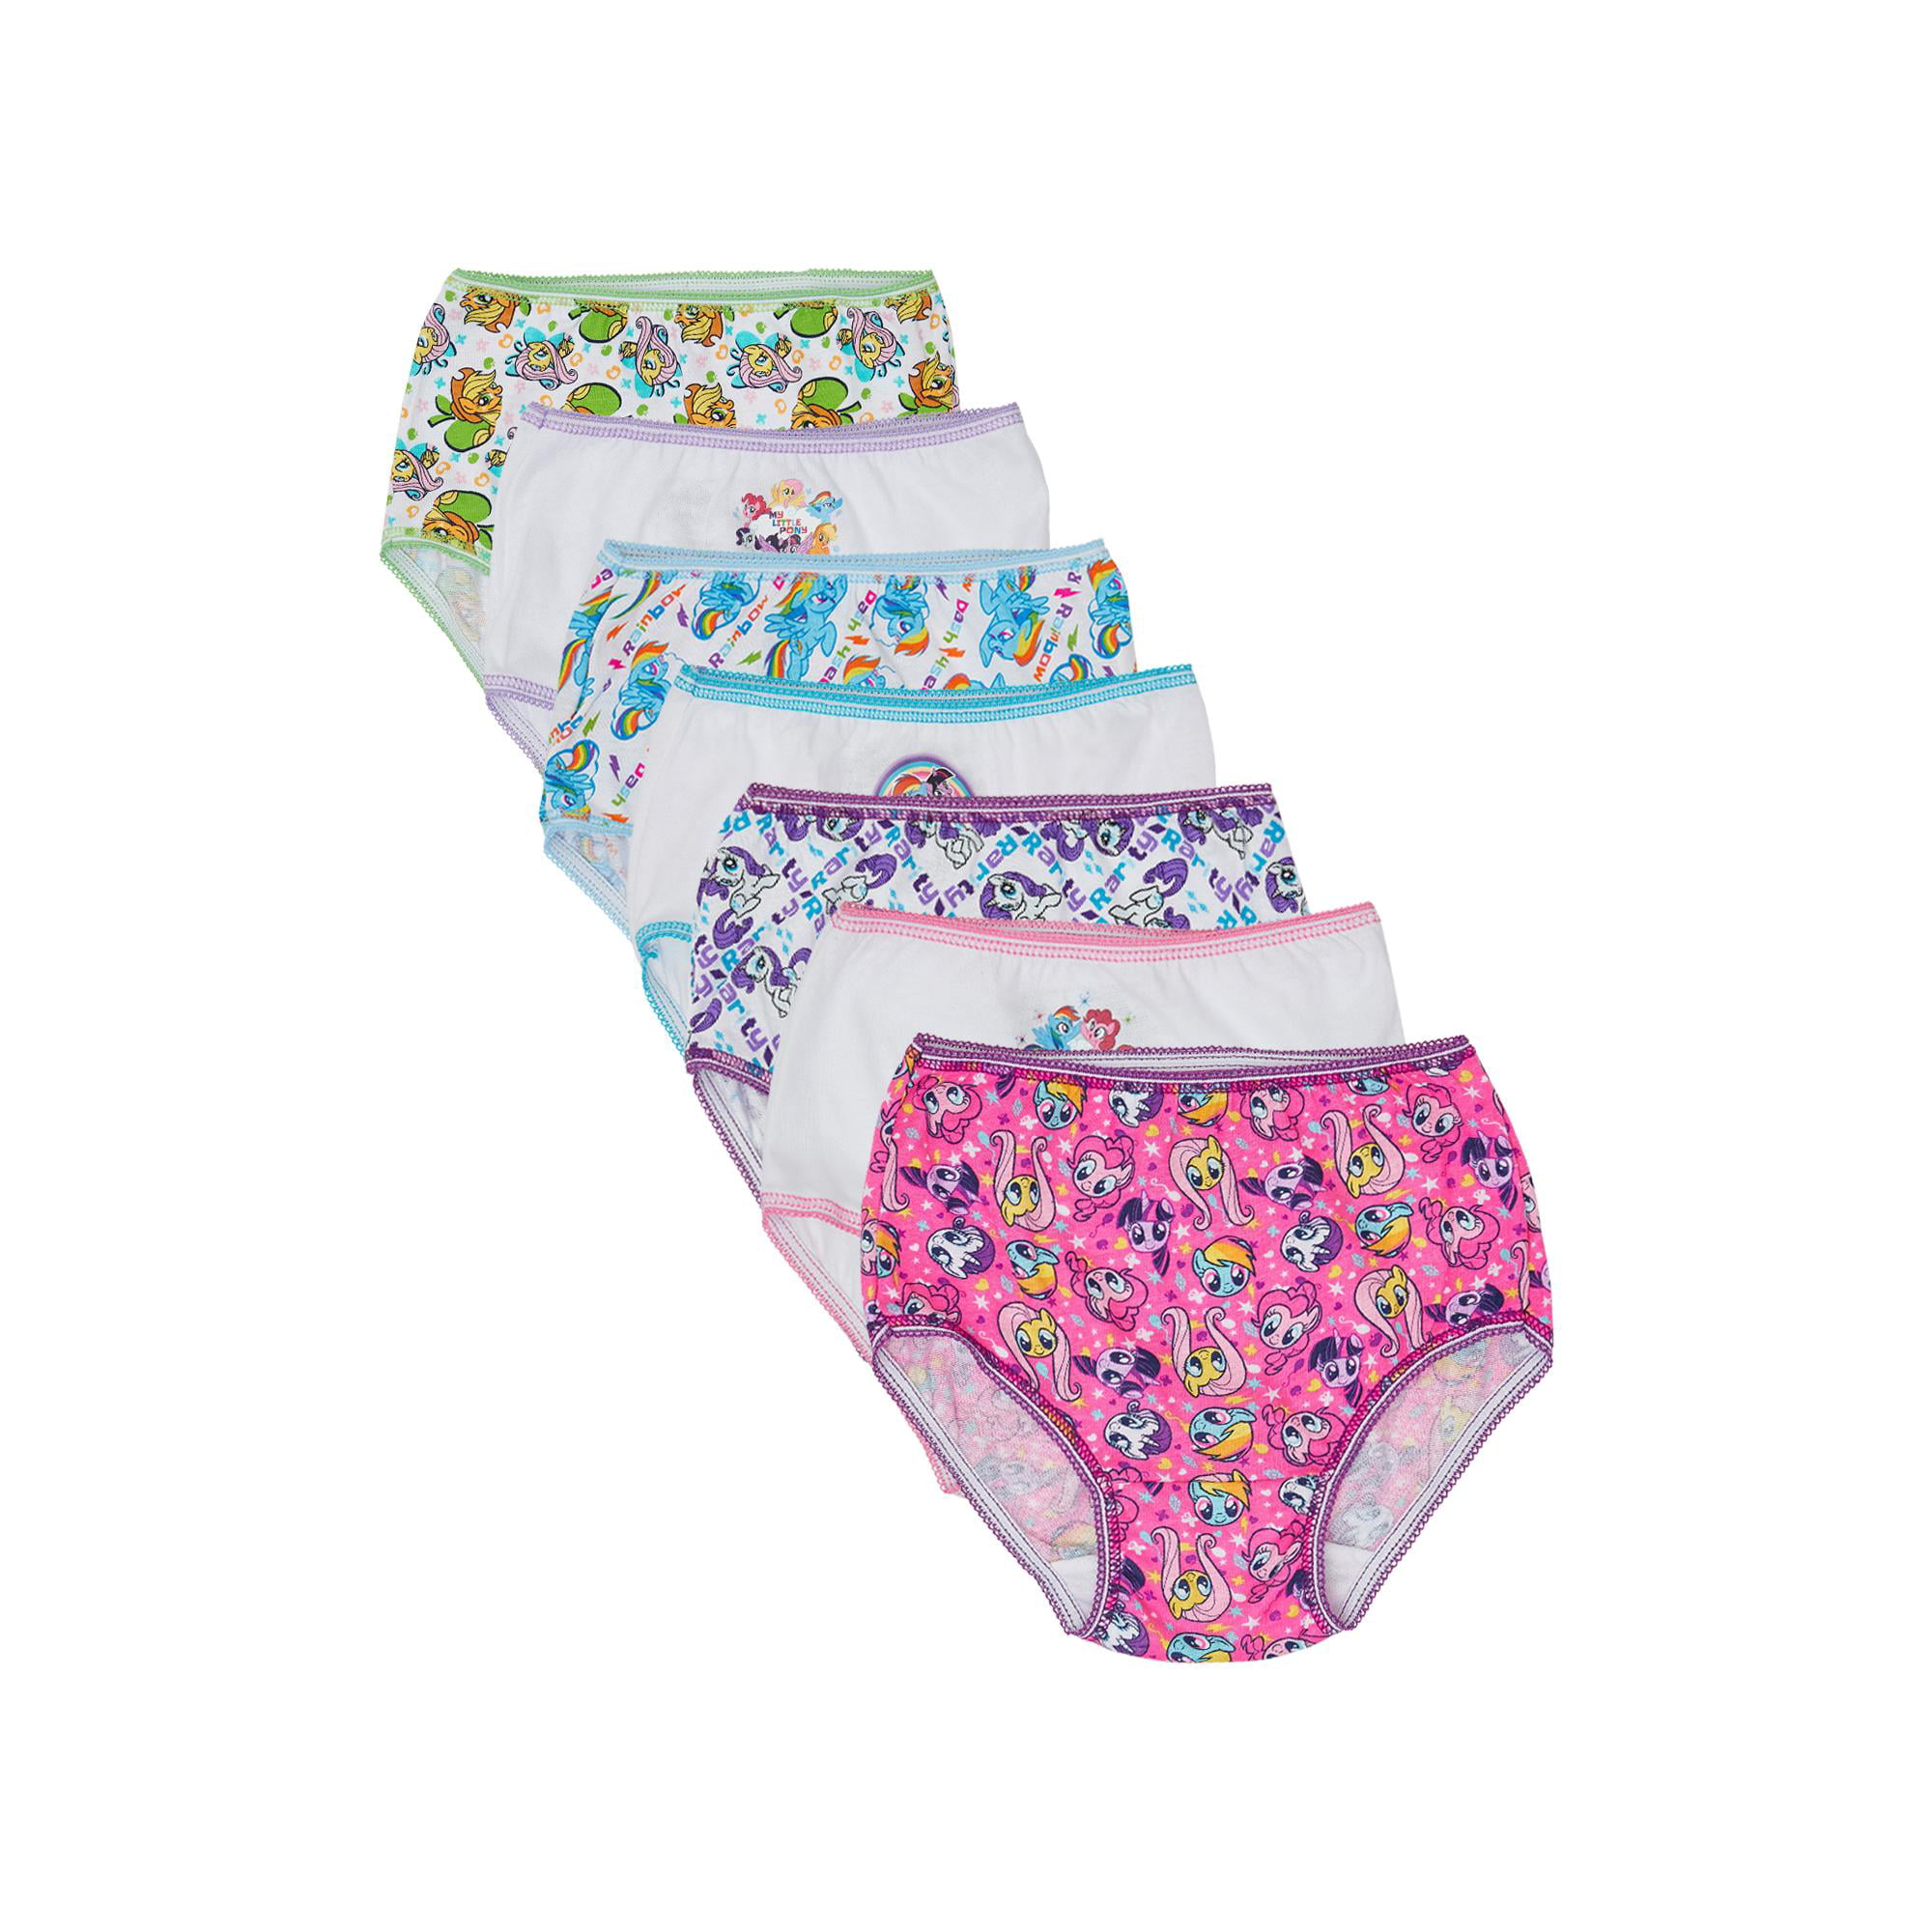 New Girls Children Solid color 100/% Cotton Pantie Underwear Undies Bottoms